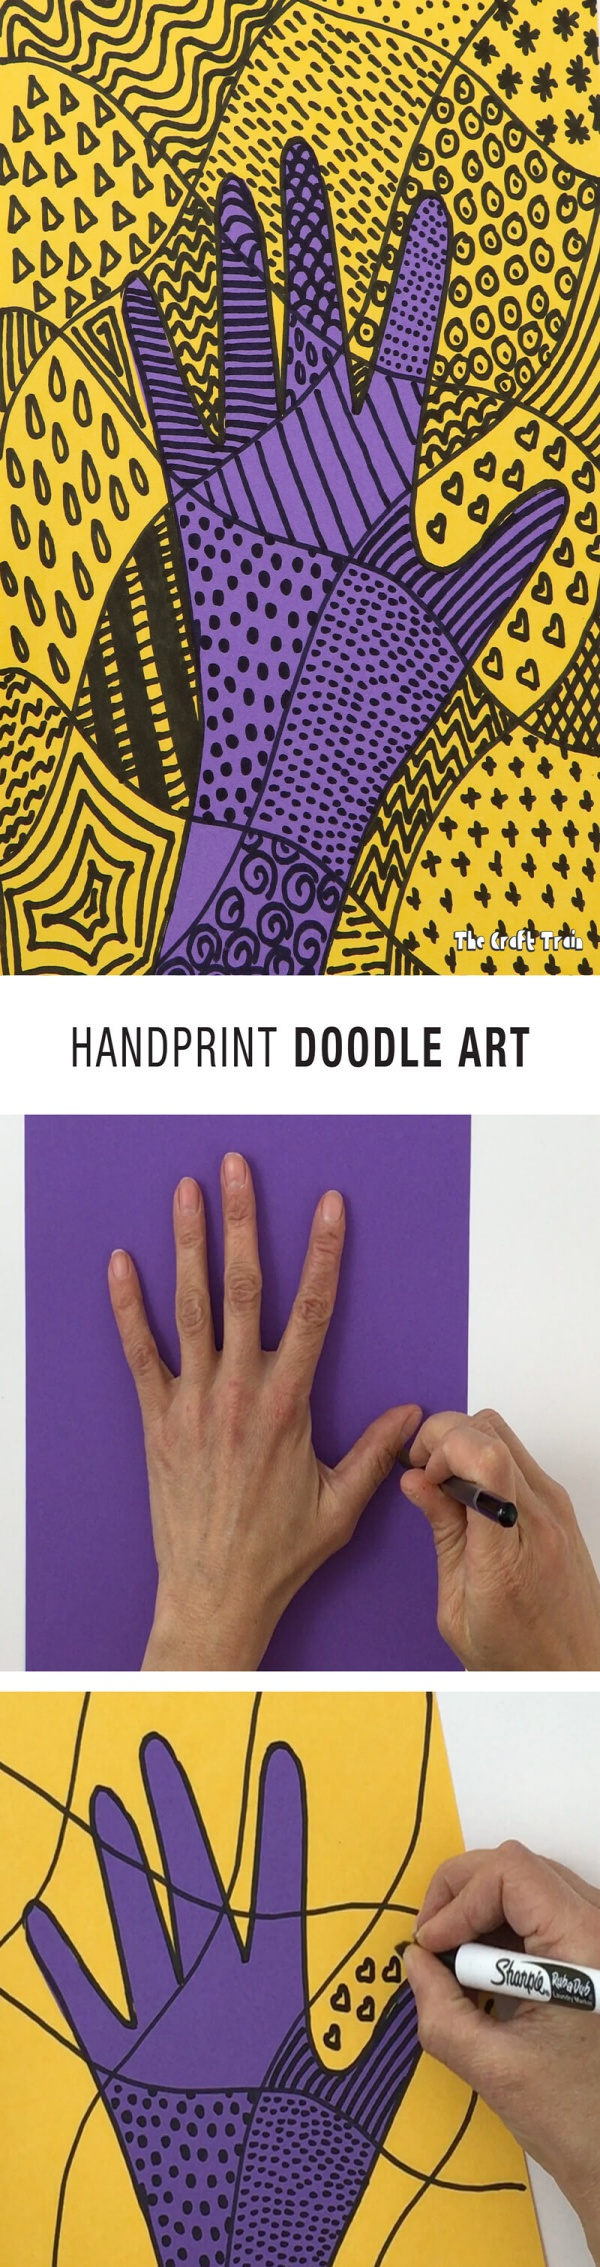 Creative Doodle Art Ideas to Practice in Free Time